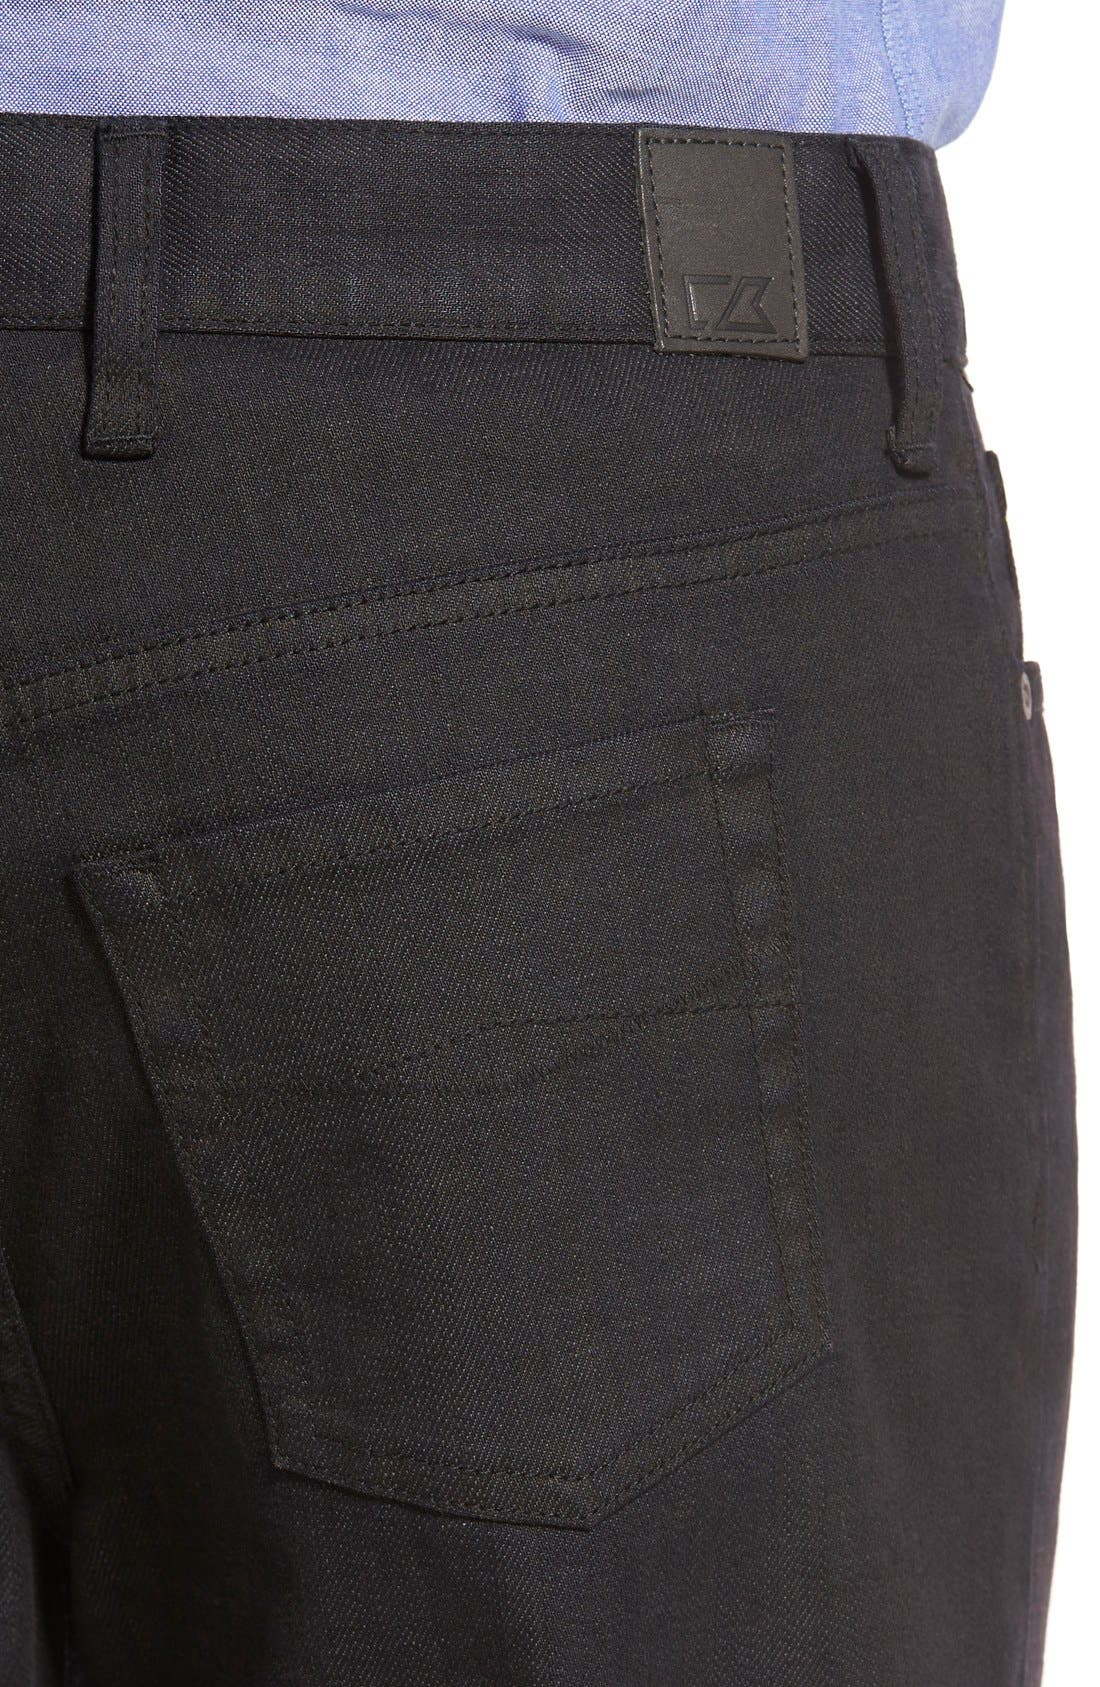 CUTTER & BUCK,                             'Greenwood' Relaxed Fit Jeans,                             Alternate thumbnail 3, color,                             BLACK